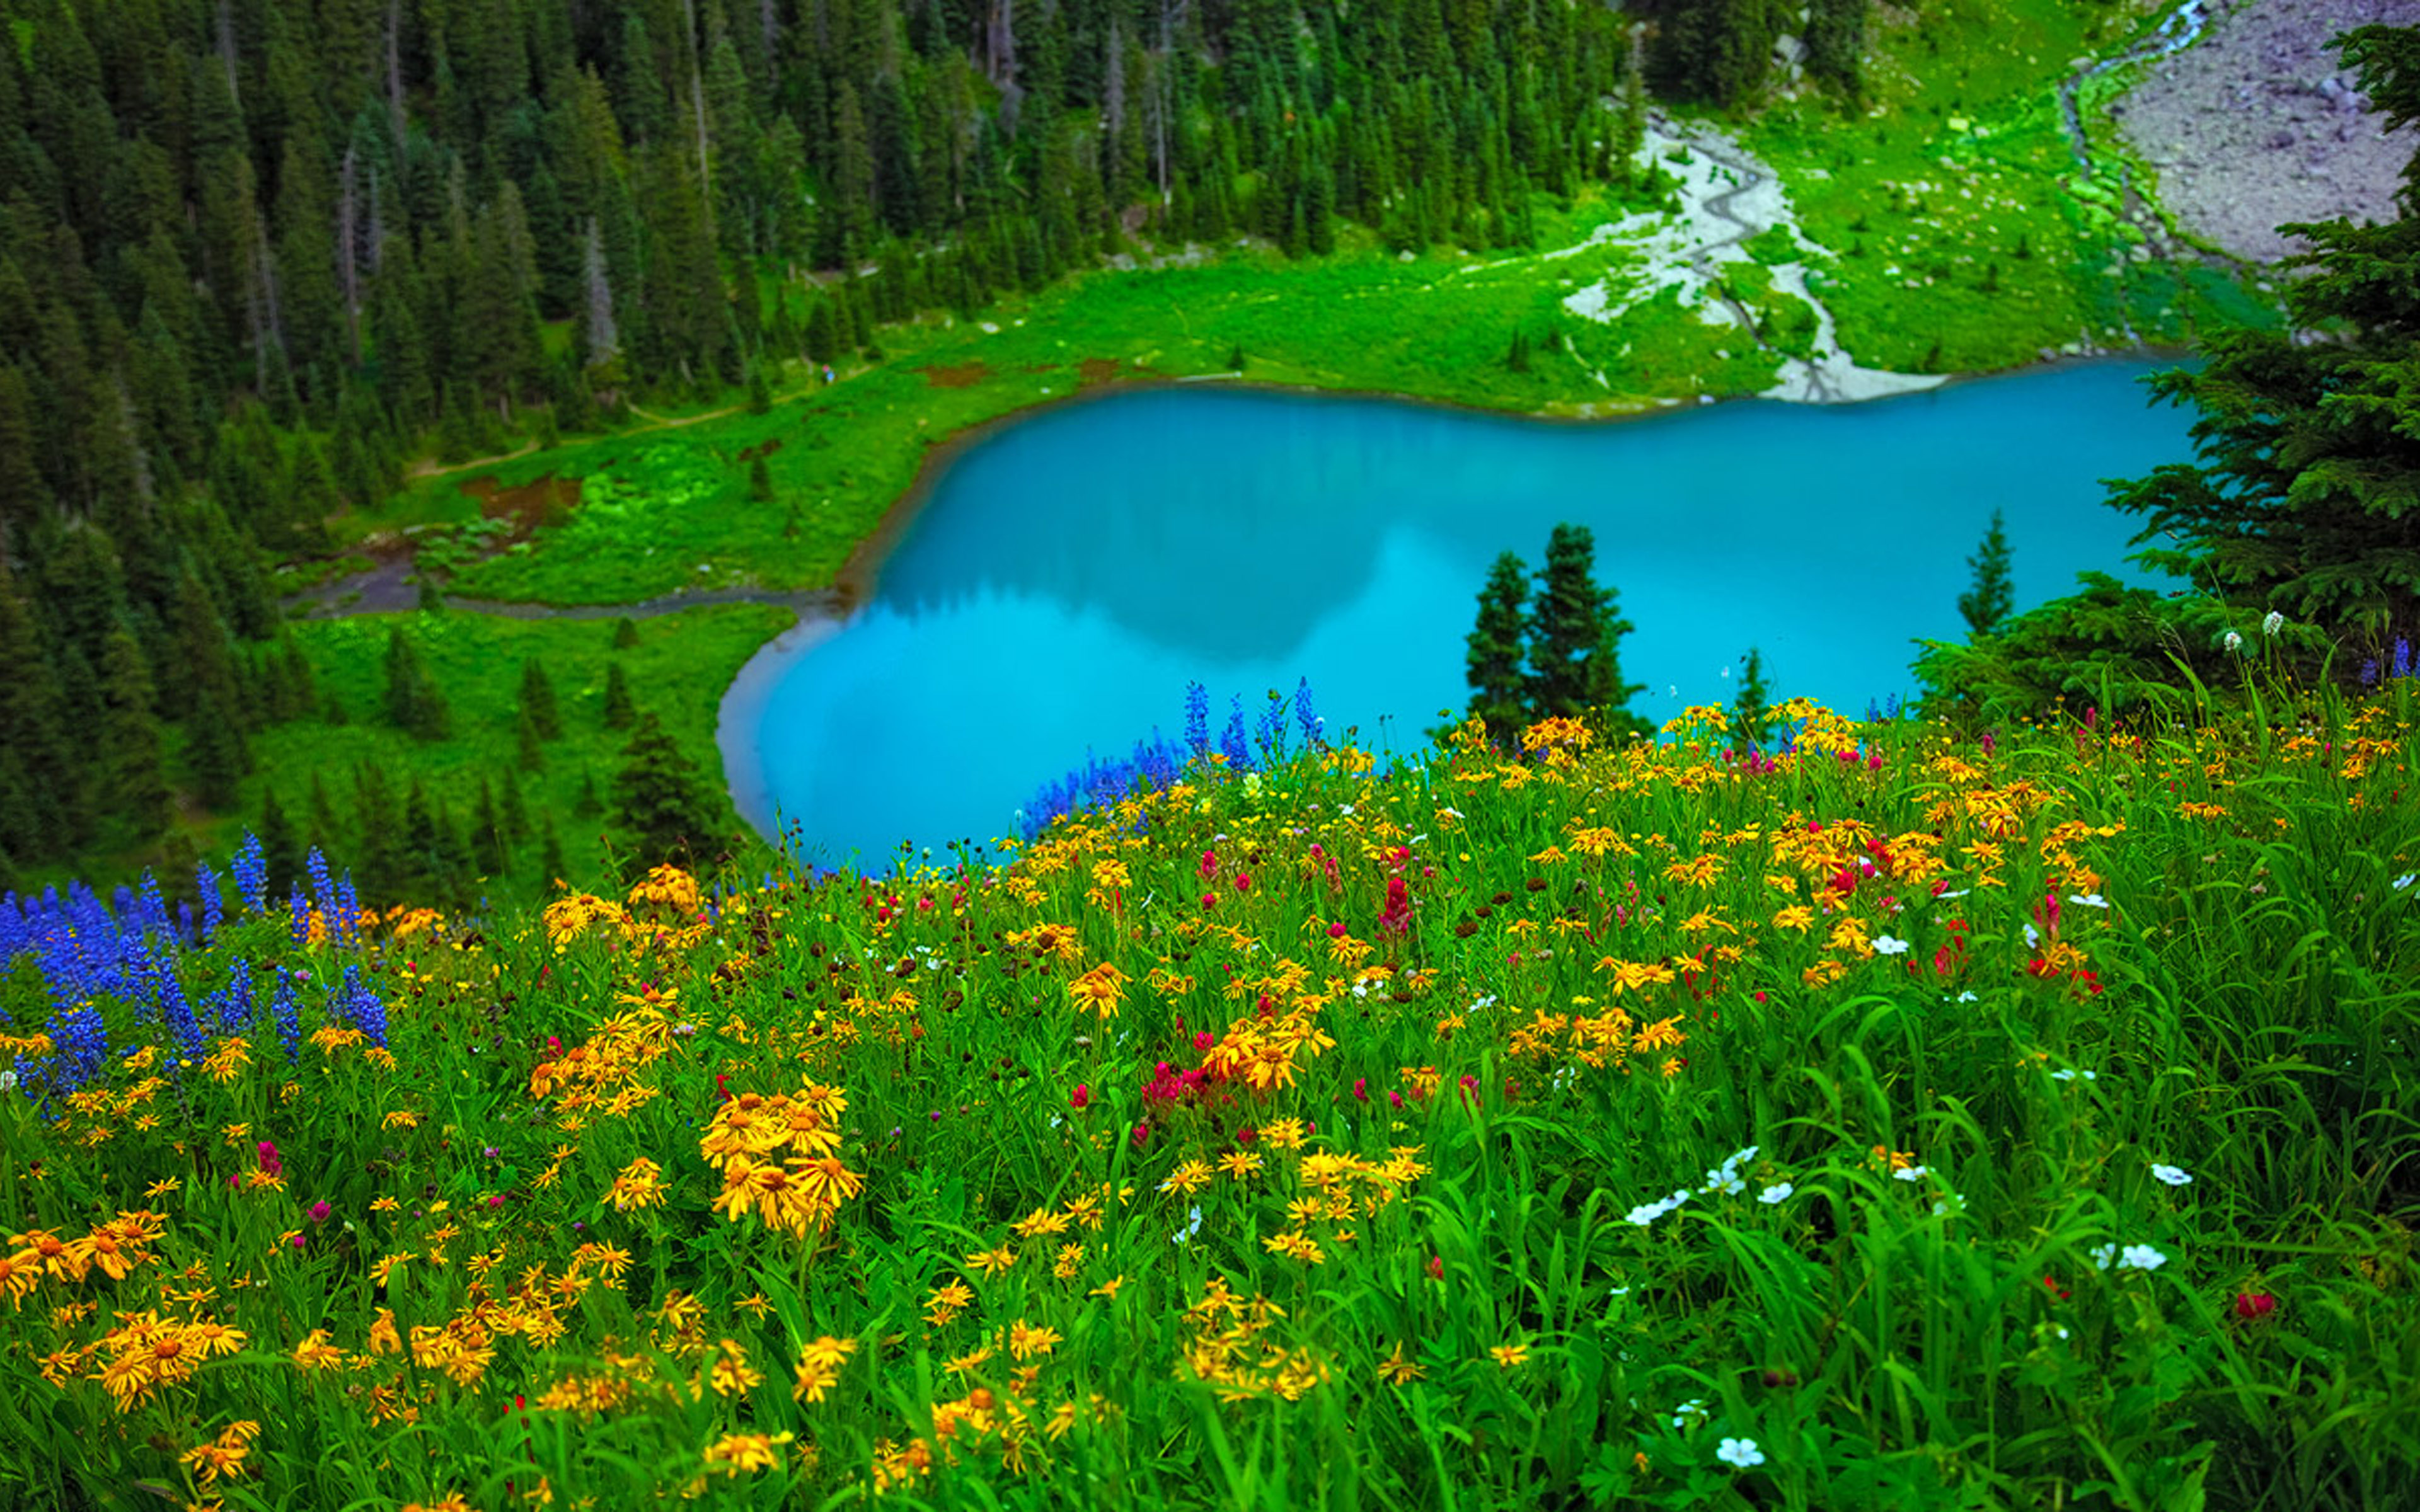 Gorgeous Turquoise Blue Lake Green Grass And Yellow Flowers Forest Wallpapers Hd